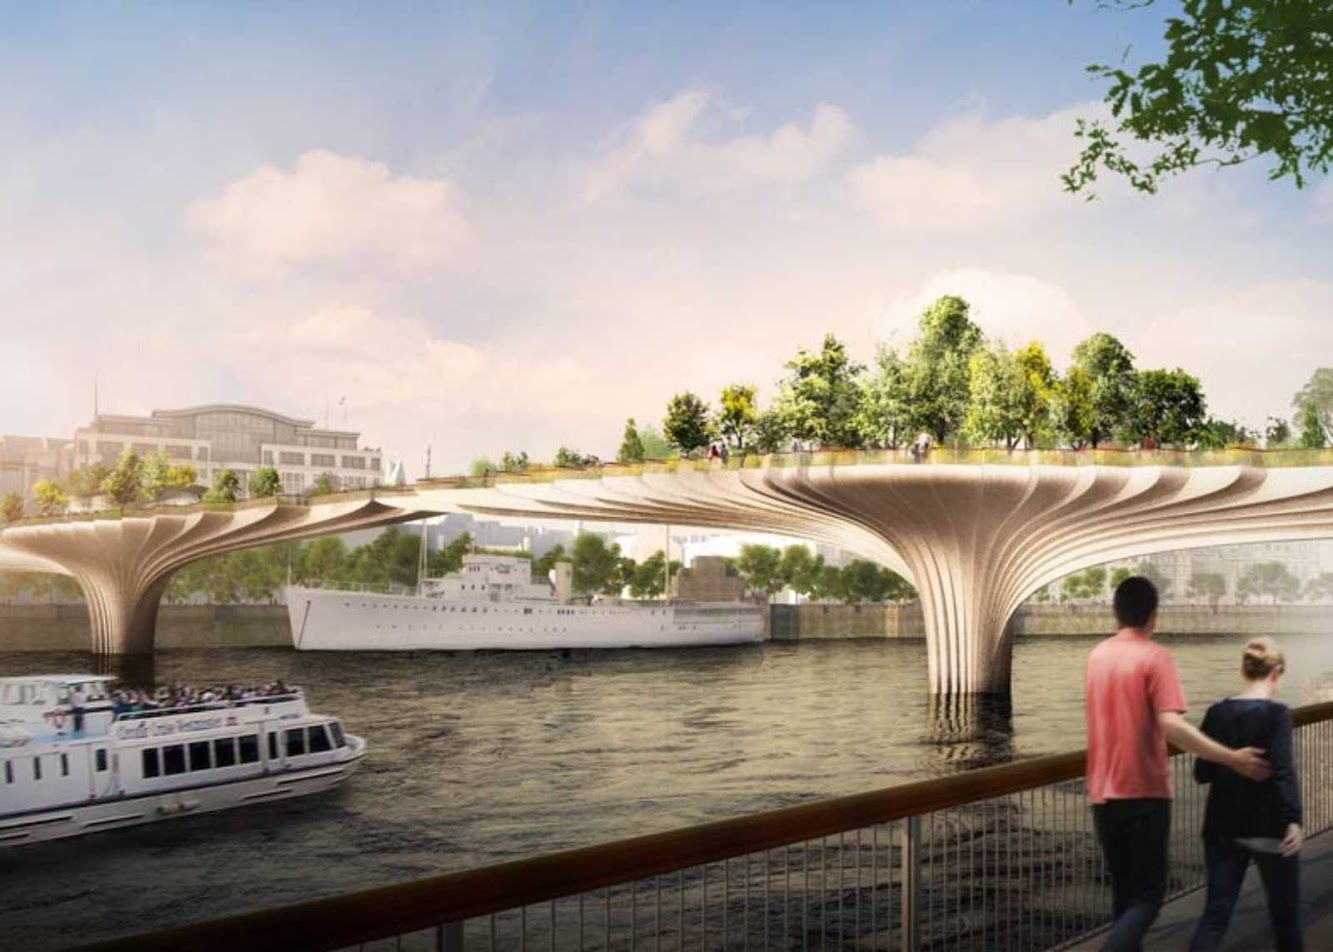 Garden Bridge for London by Thomas Heatherwick